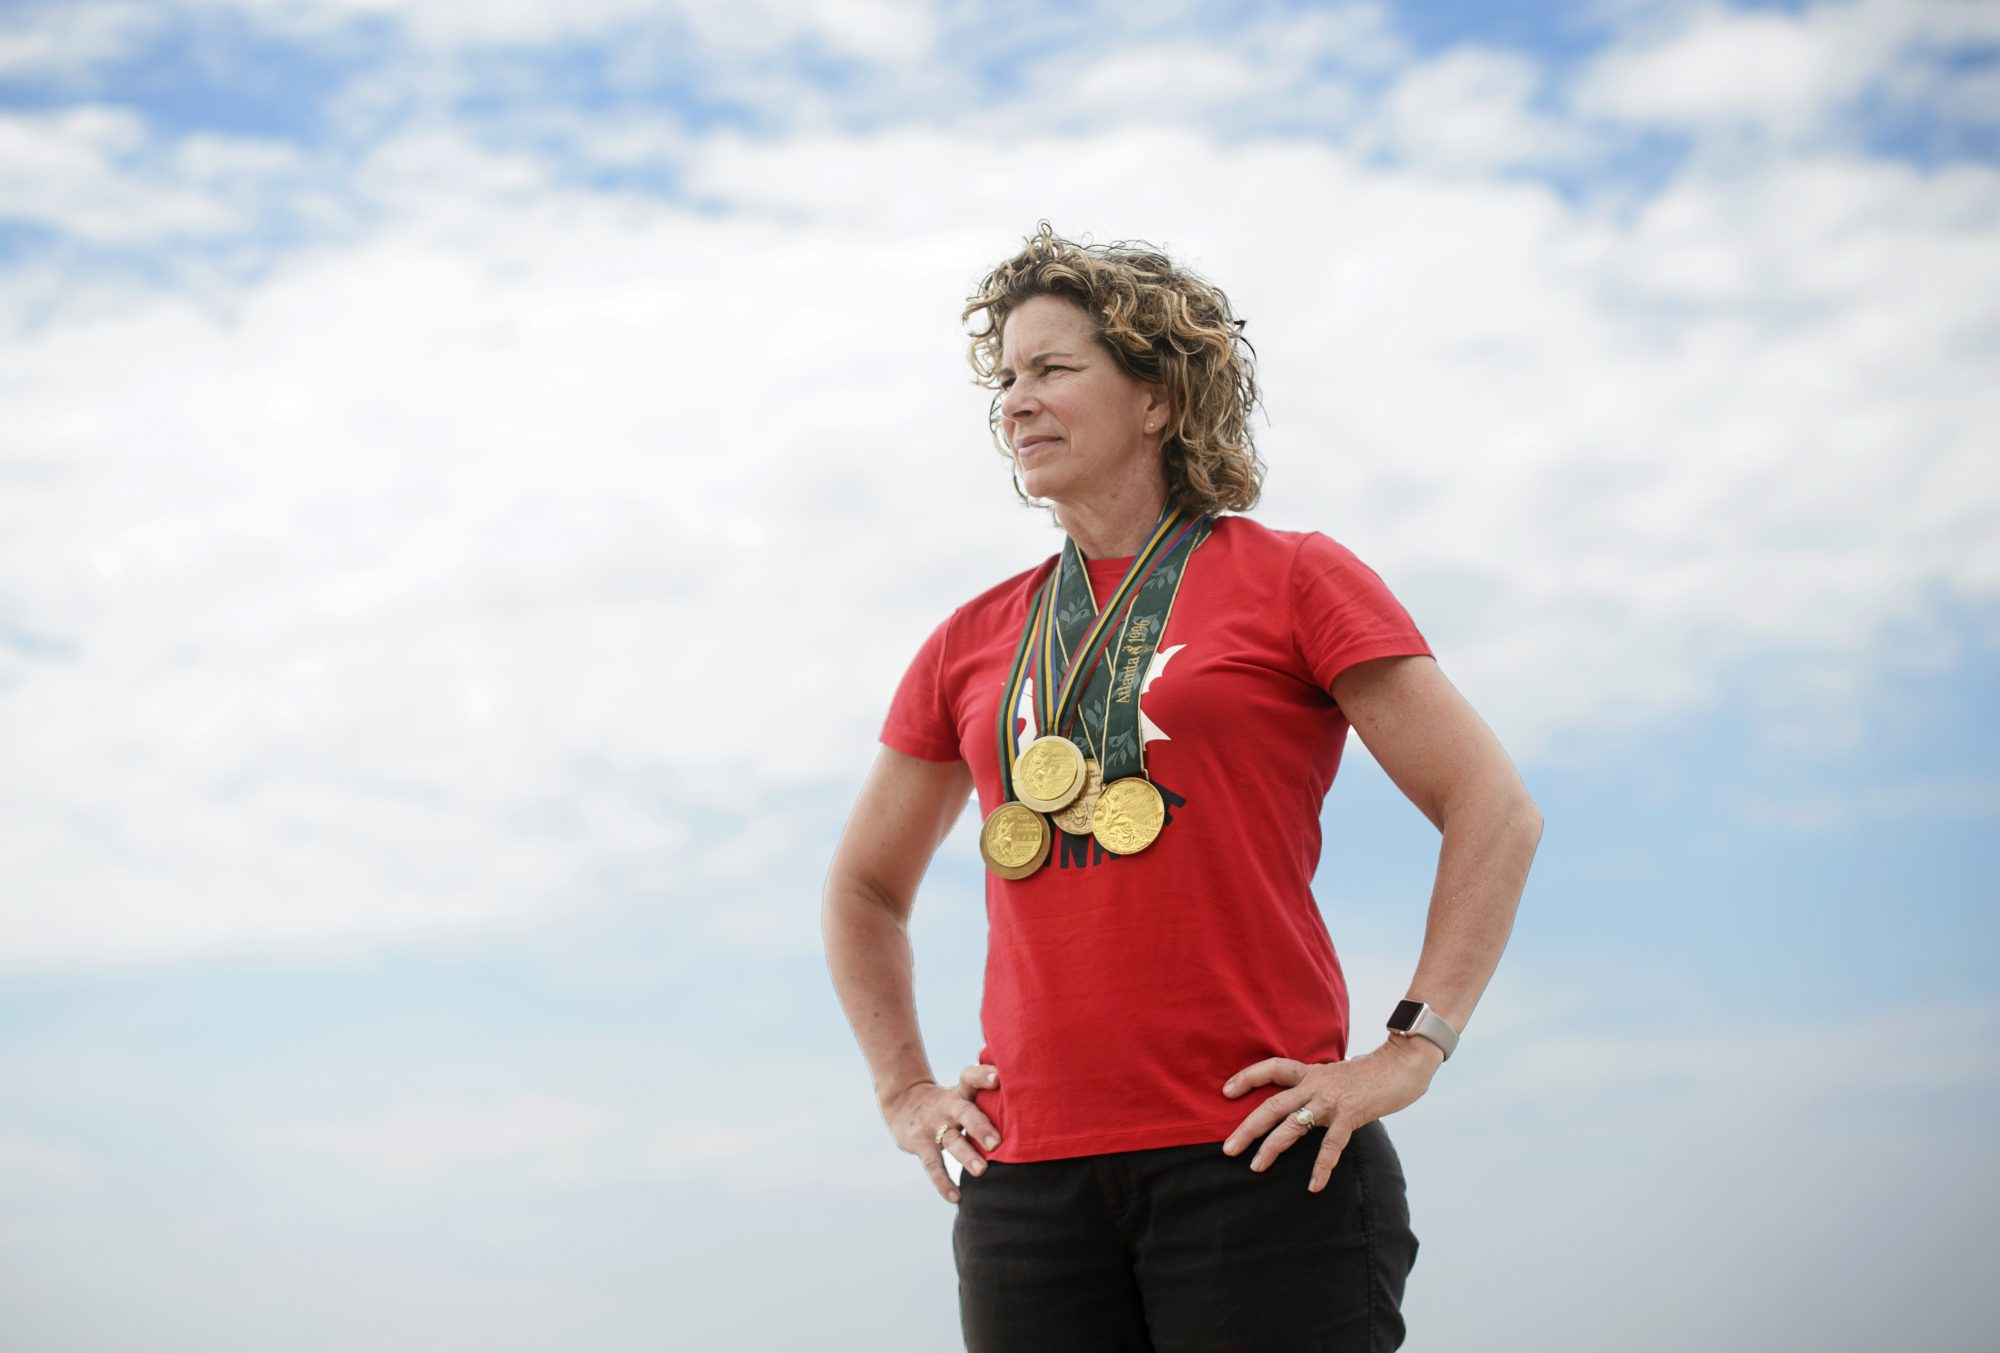 TORONTO, Ont. (28/06/19) - Team Canada's Chef de Mission for the Tokyo 2020 games Marnie McBean poses for a portrait at the Argonauts Rowing Club on June 28, 2019. Photo by Andrew Lahodynskyj